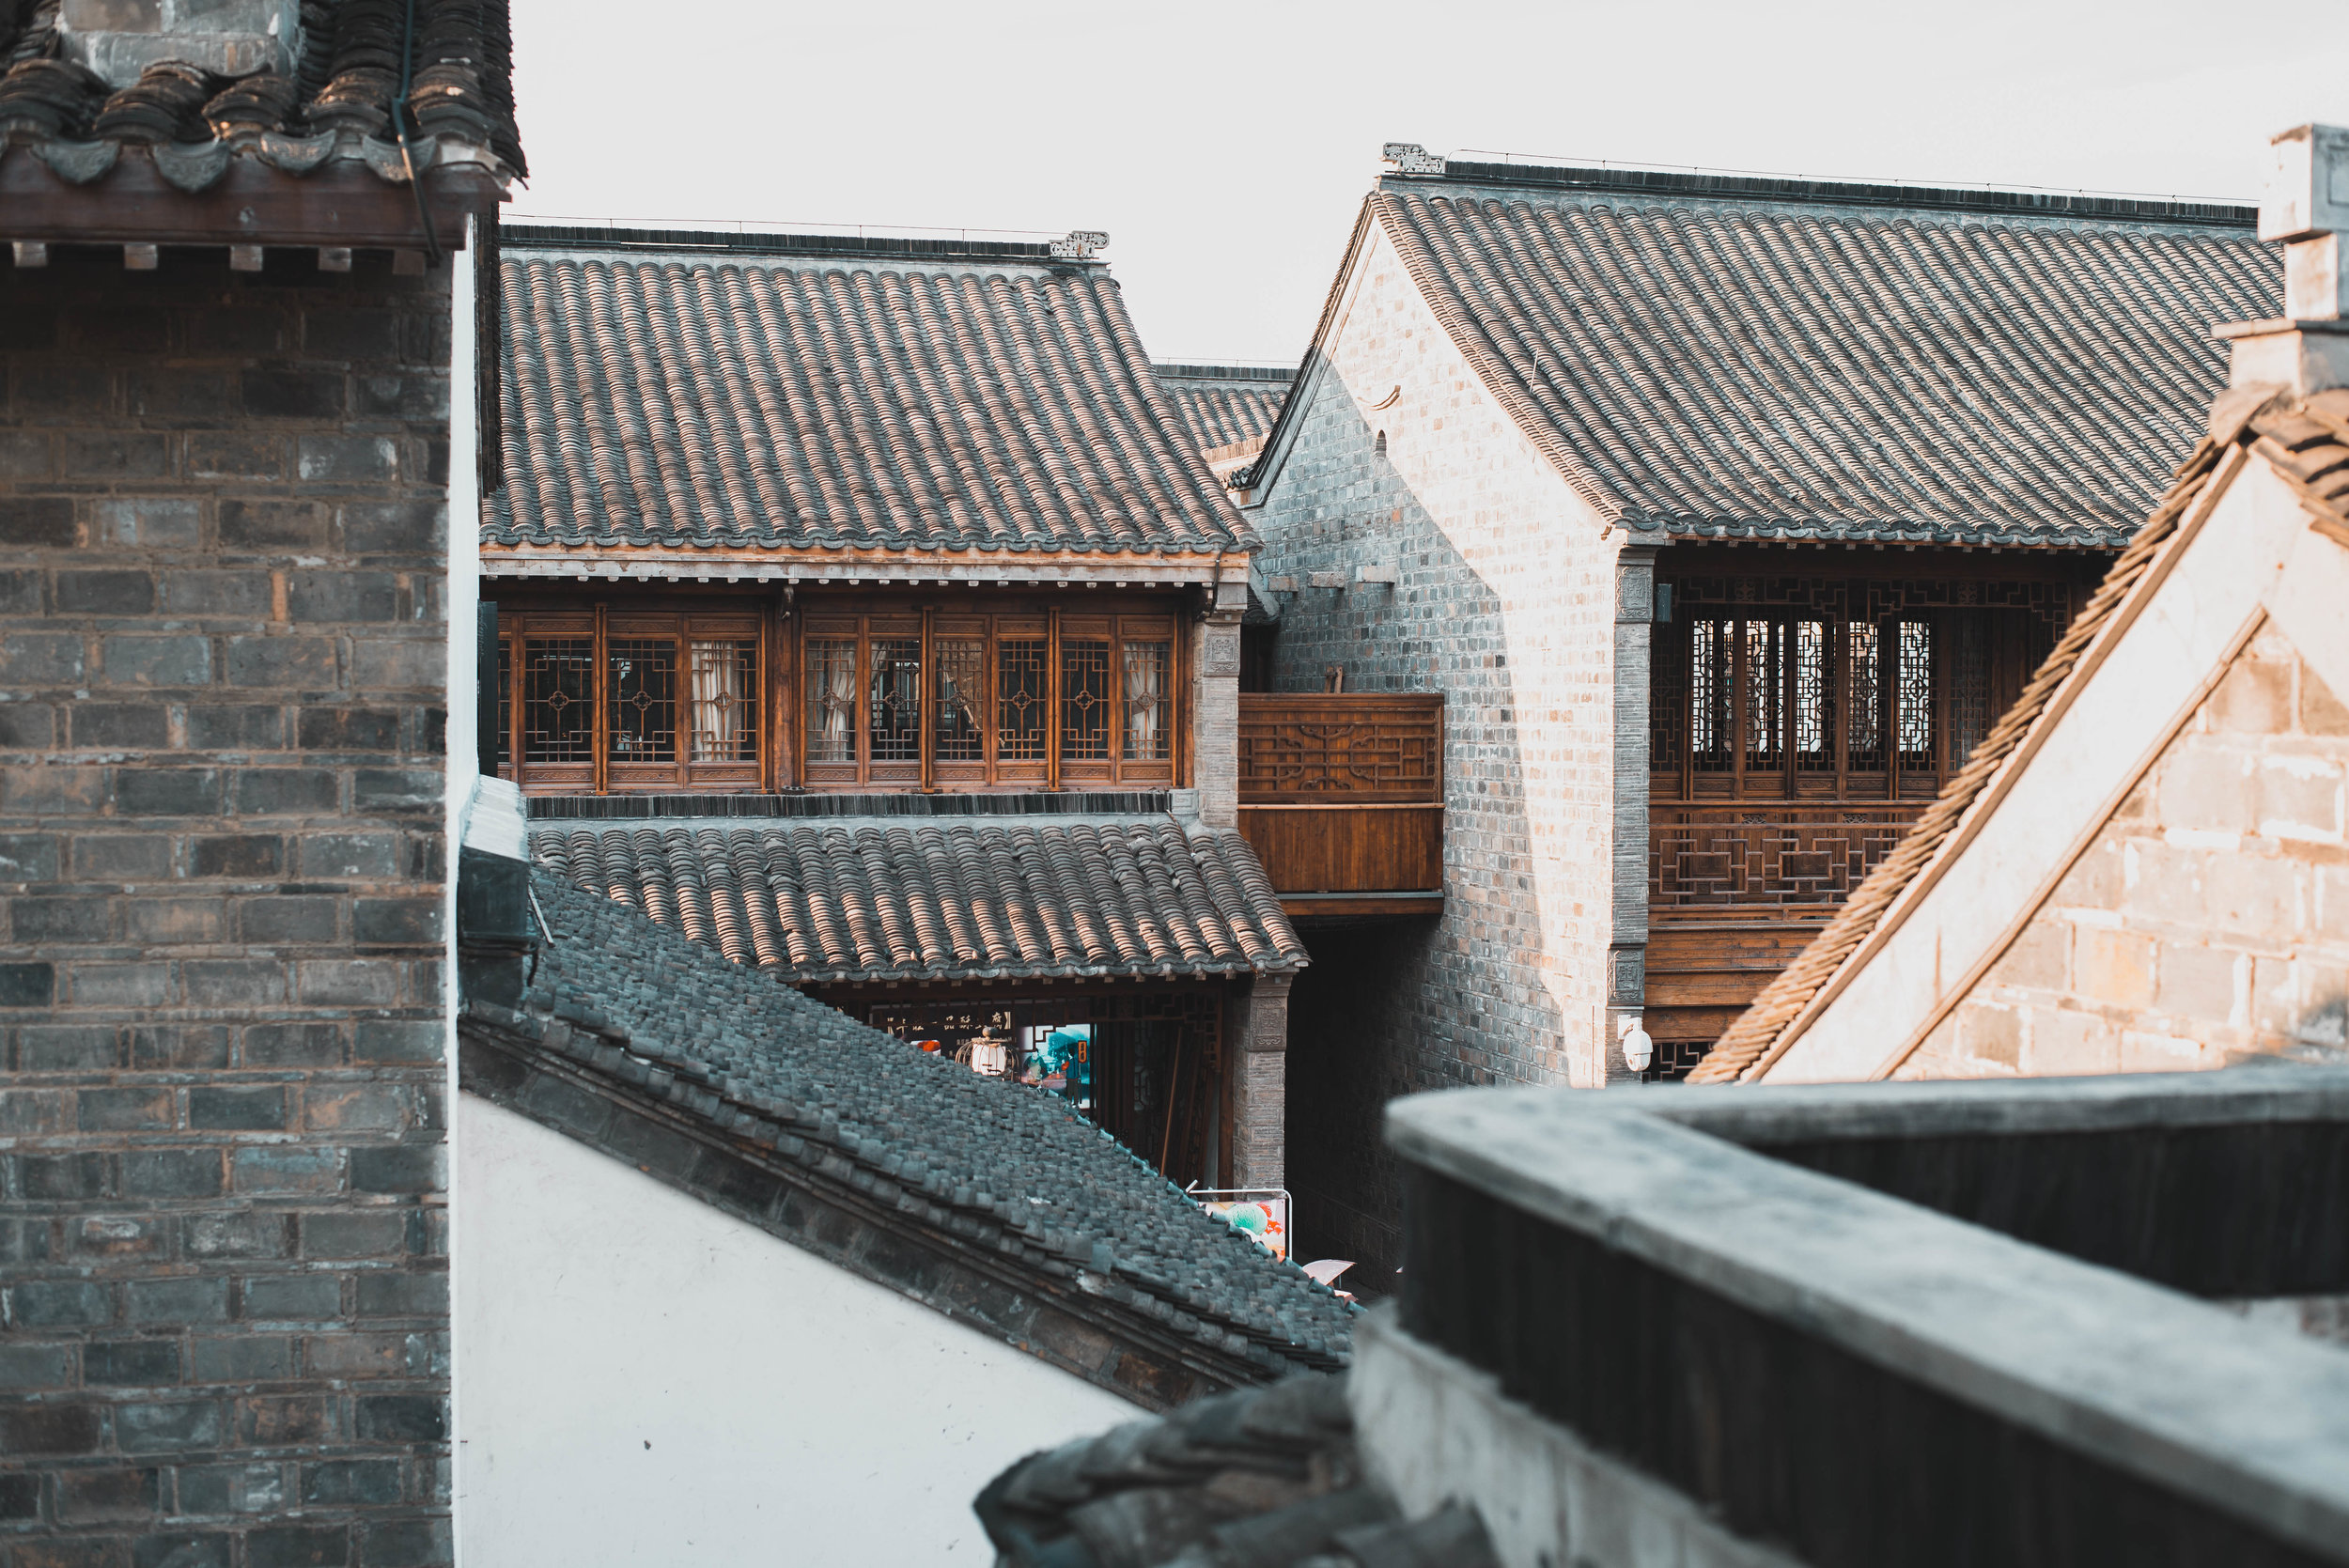 Exploring the rooftops near Nanjing's Confucius Temple